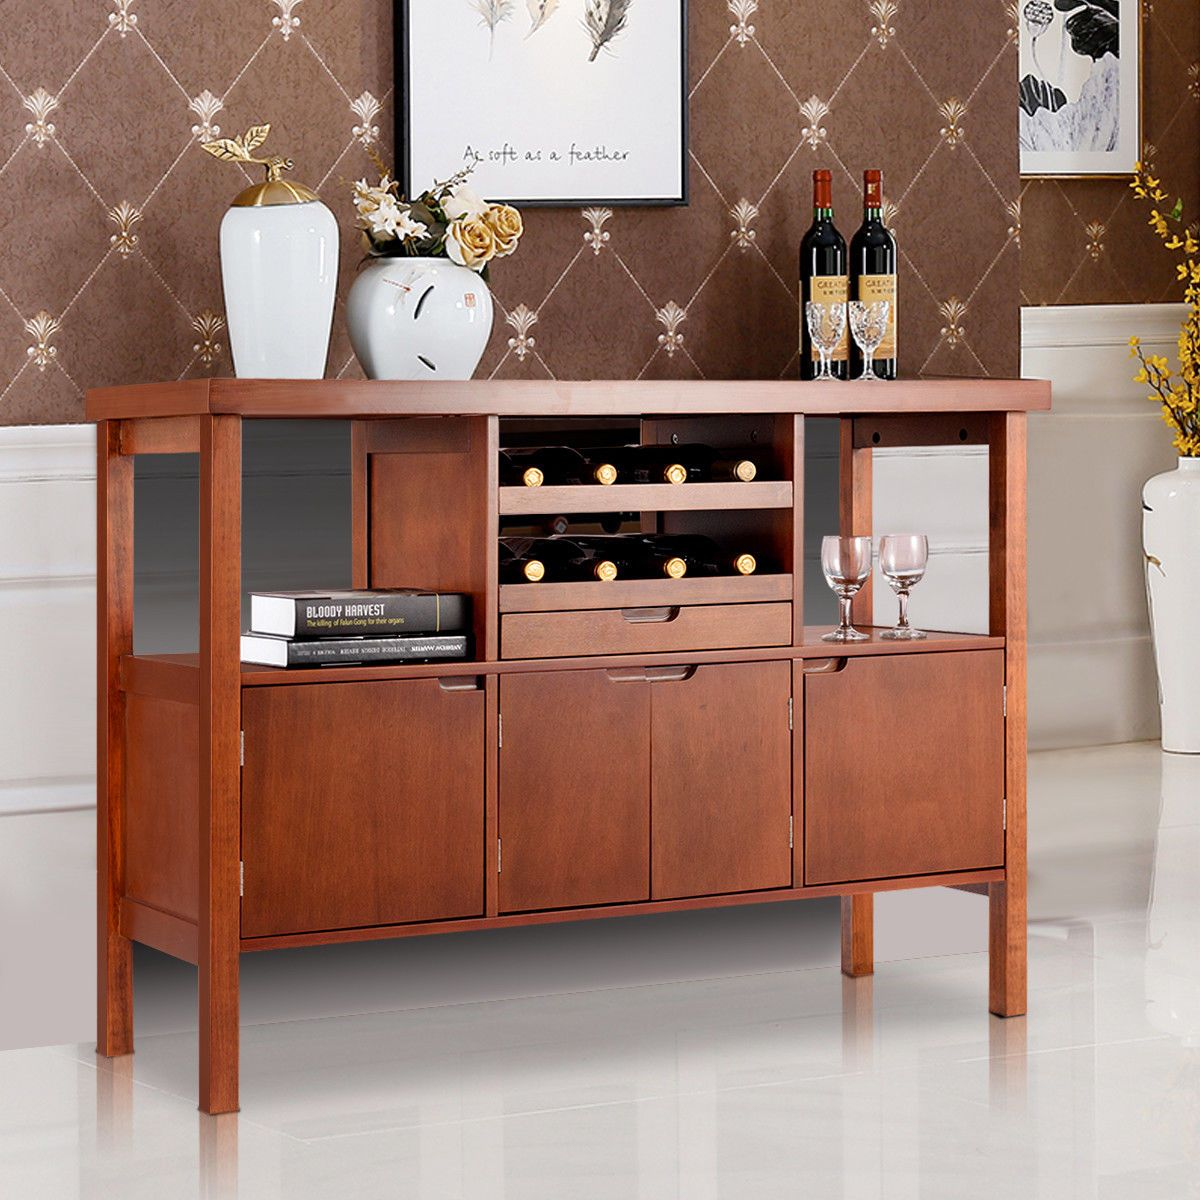 Home With Images Sideboard Storage Buffet Server Table Dining Storage